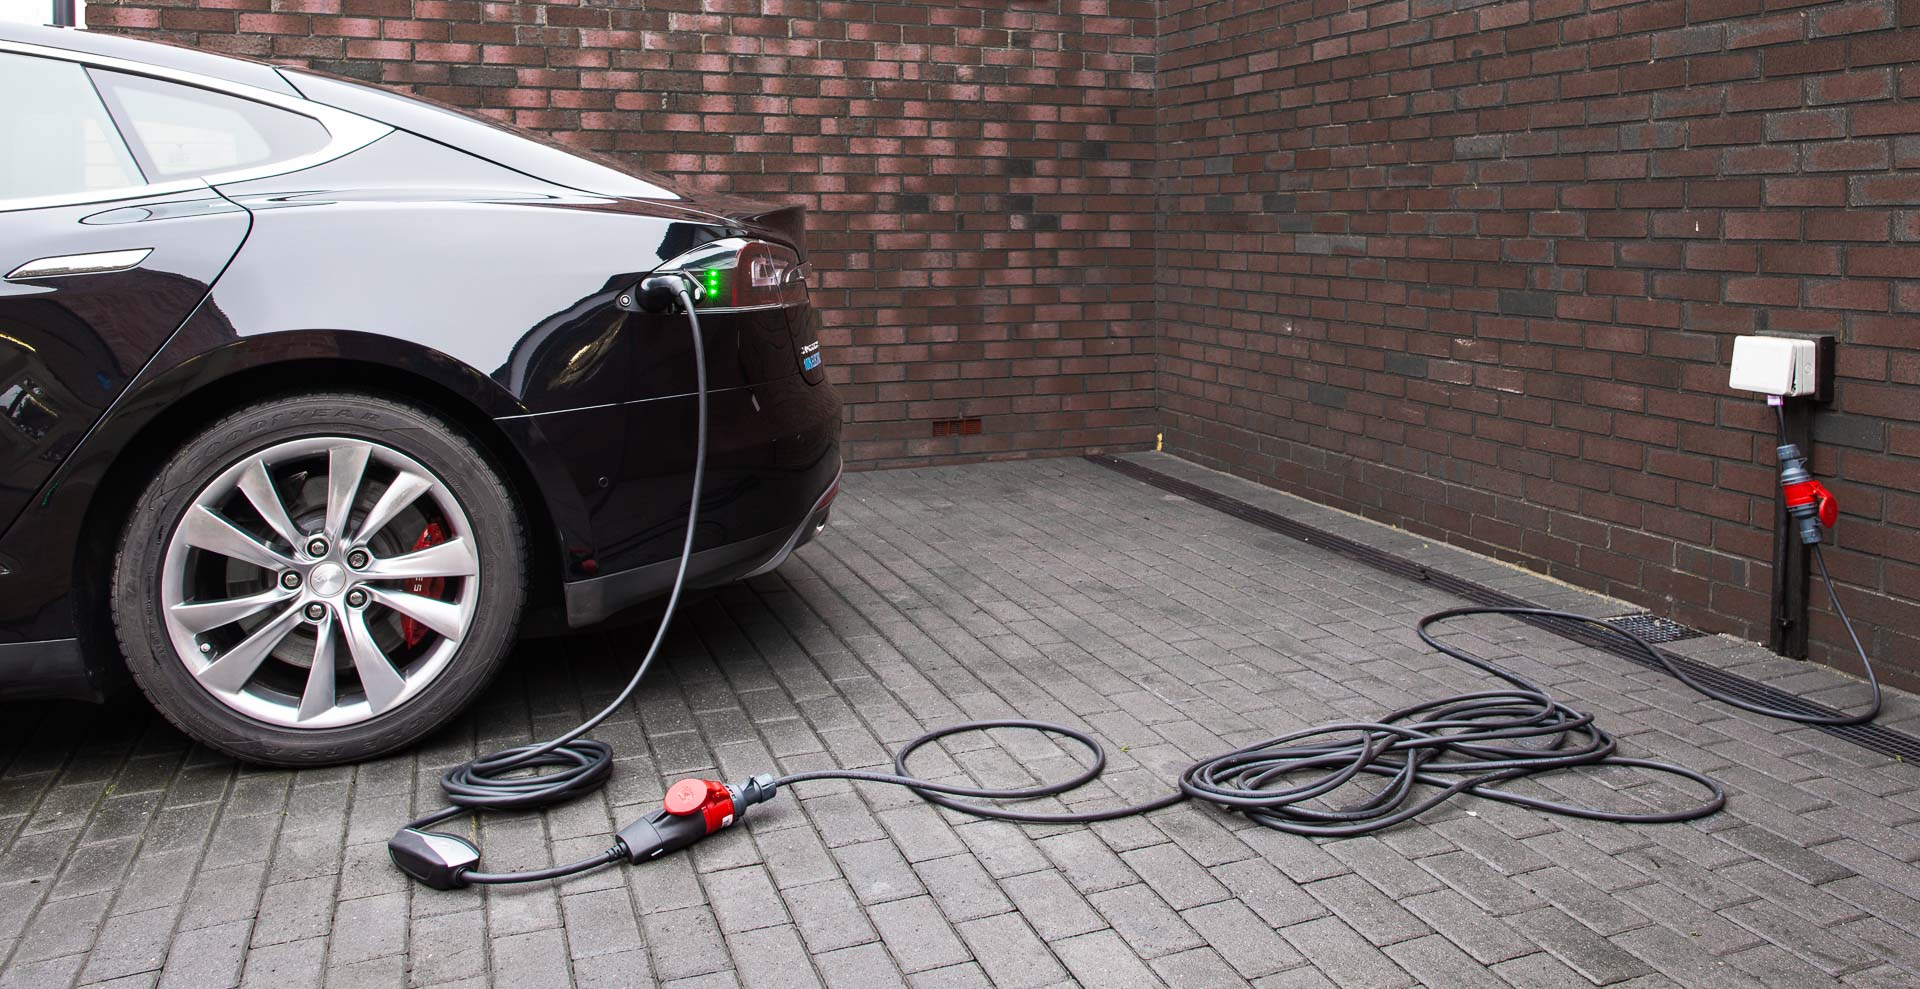 Xavelec Charging Cables And Adaptors For Your Tesla Ev Umc